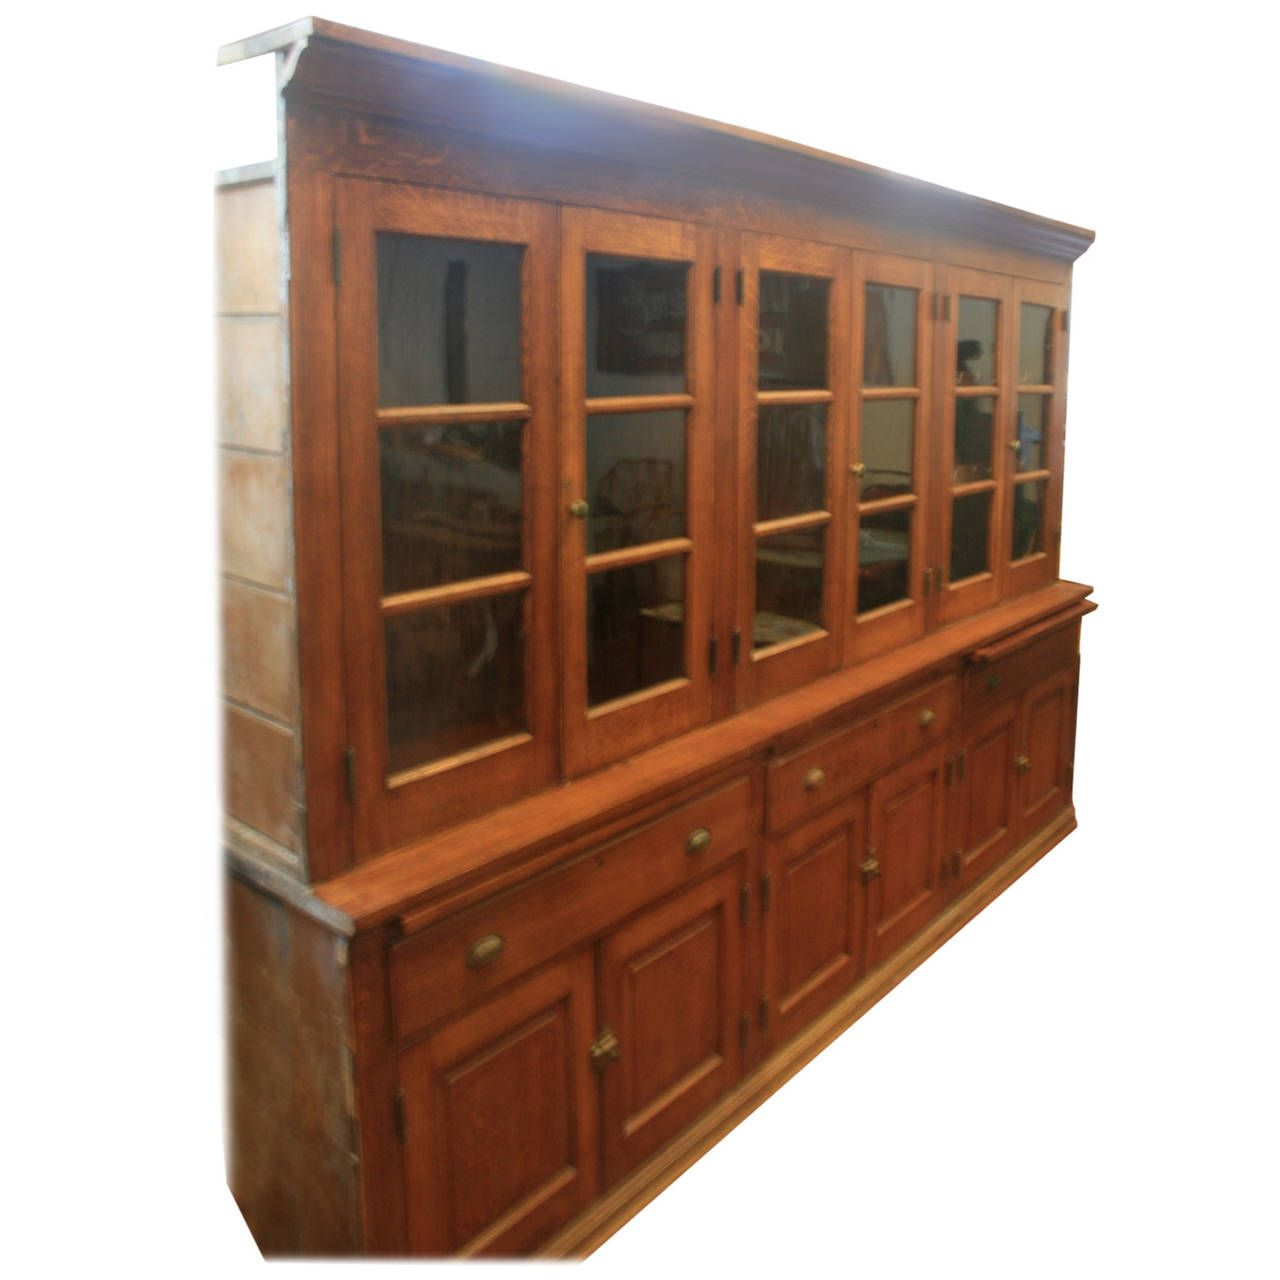 Giant 19th Century Butler S Pantry Cabinet 1 Pantry Cabinet Butler Pantry Vintage Cabinets